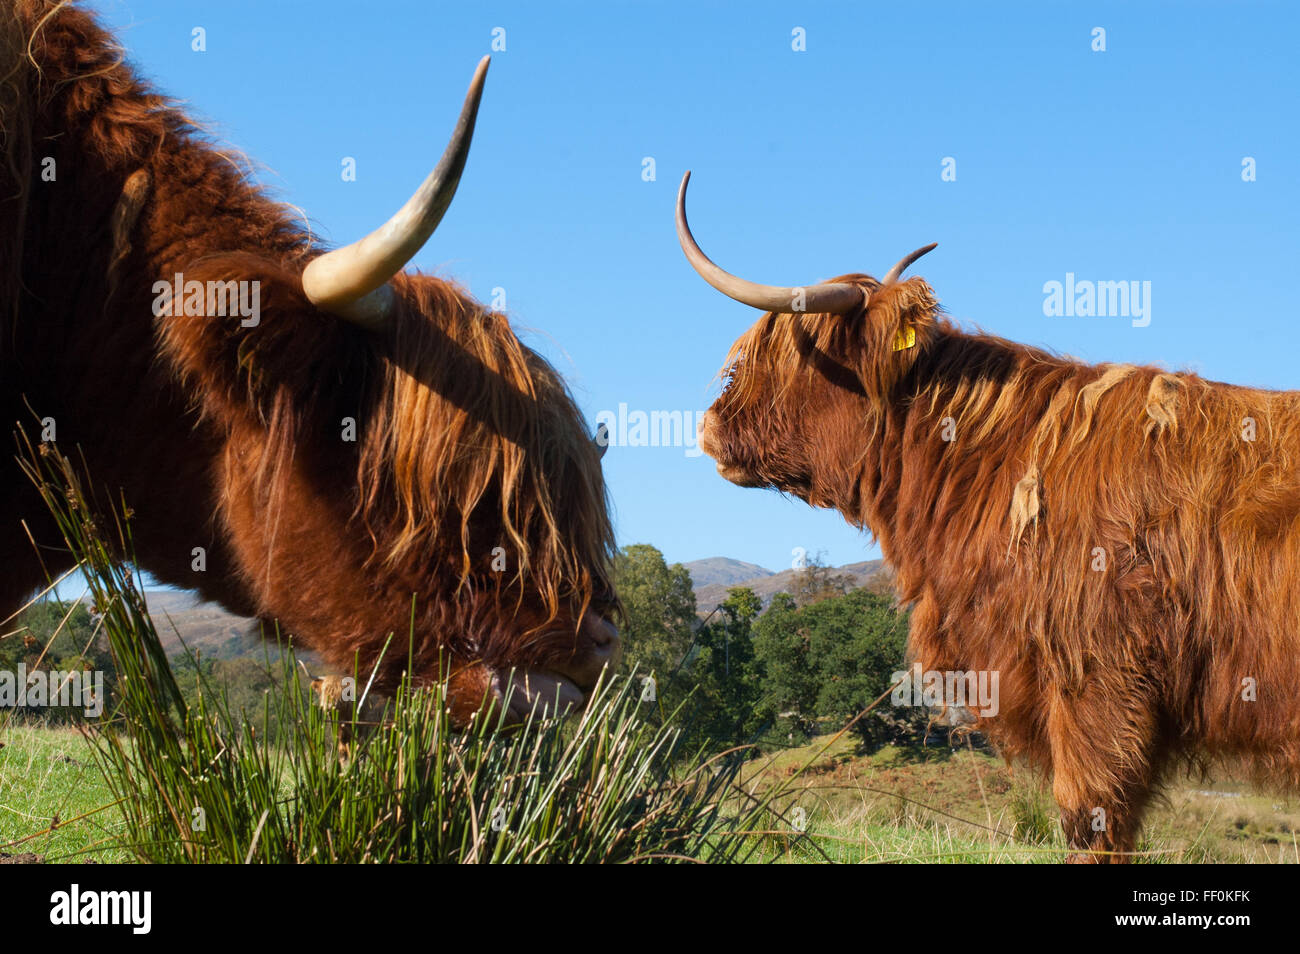 Deux Scottish Highland vaches qui paissent dans un champ en Ecosse Photo Stock